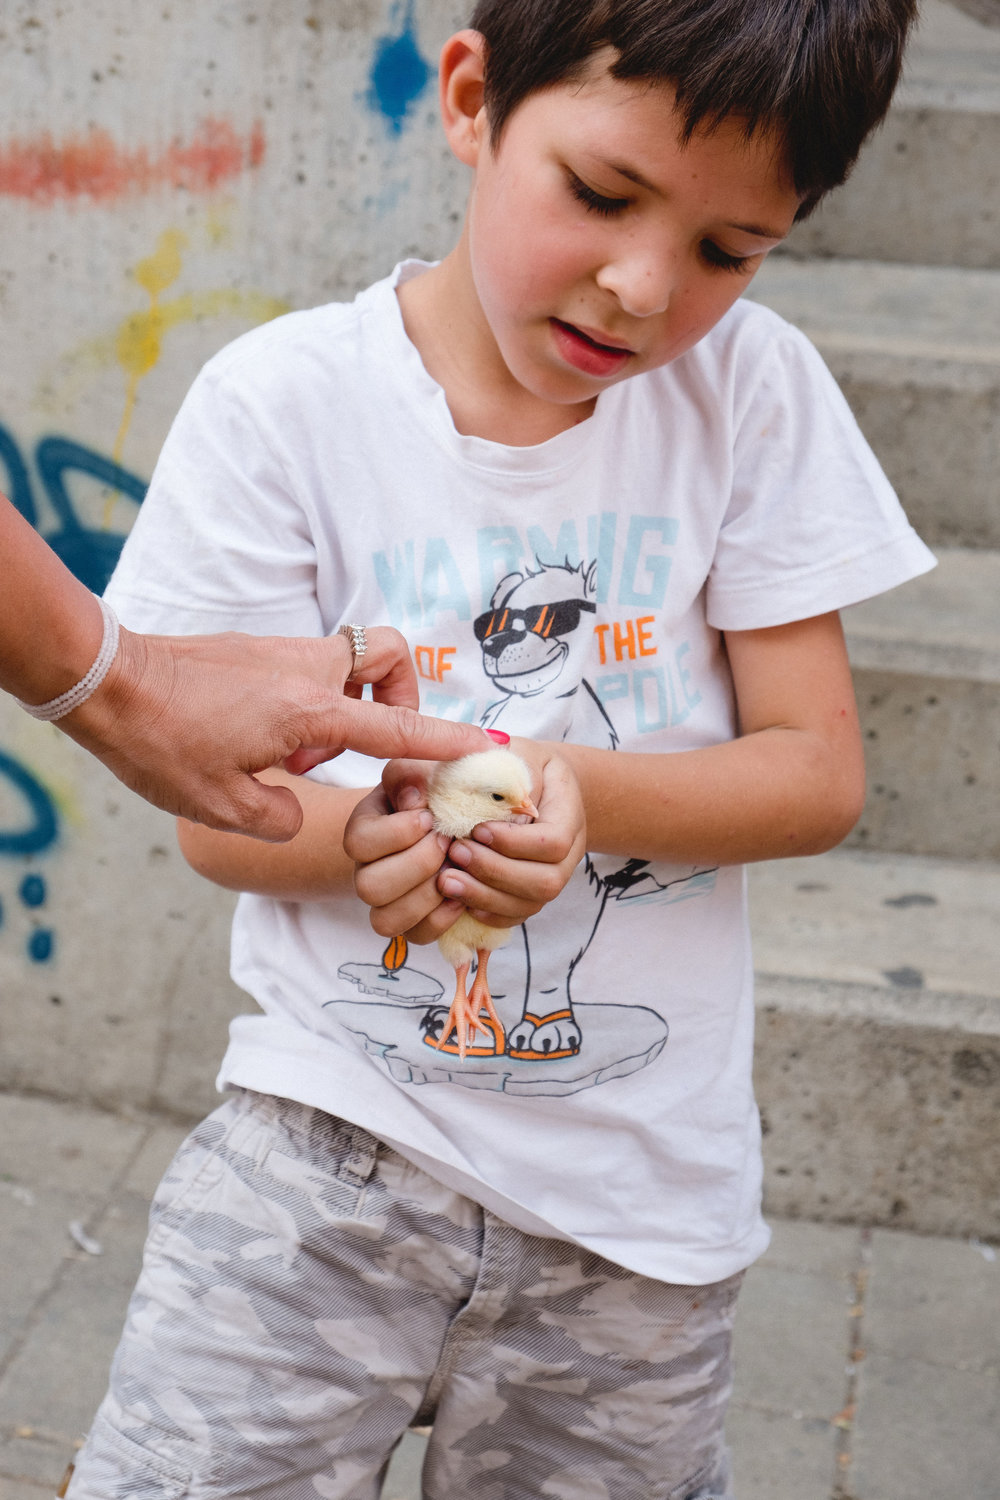 Local boy holding a baby chick in Medellin, Colombia